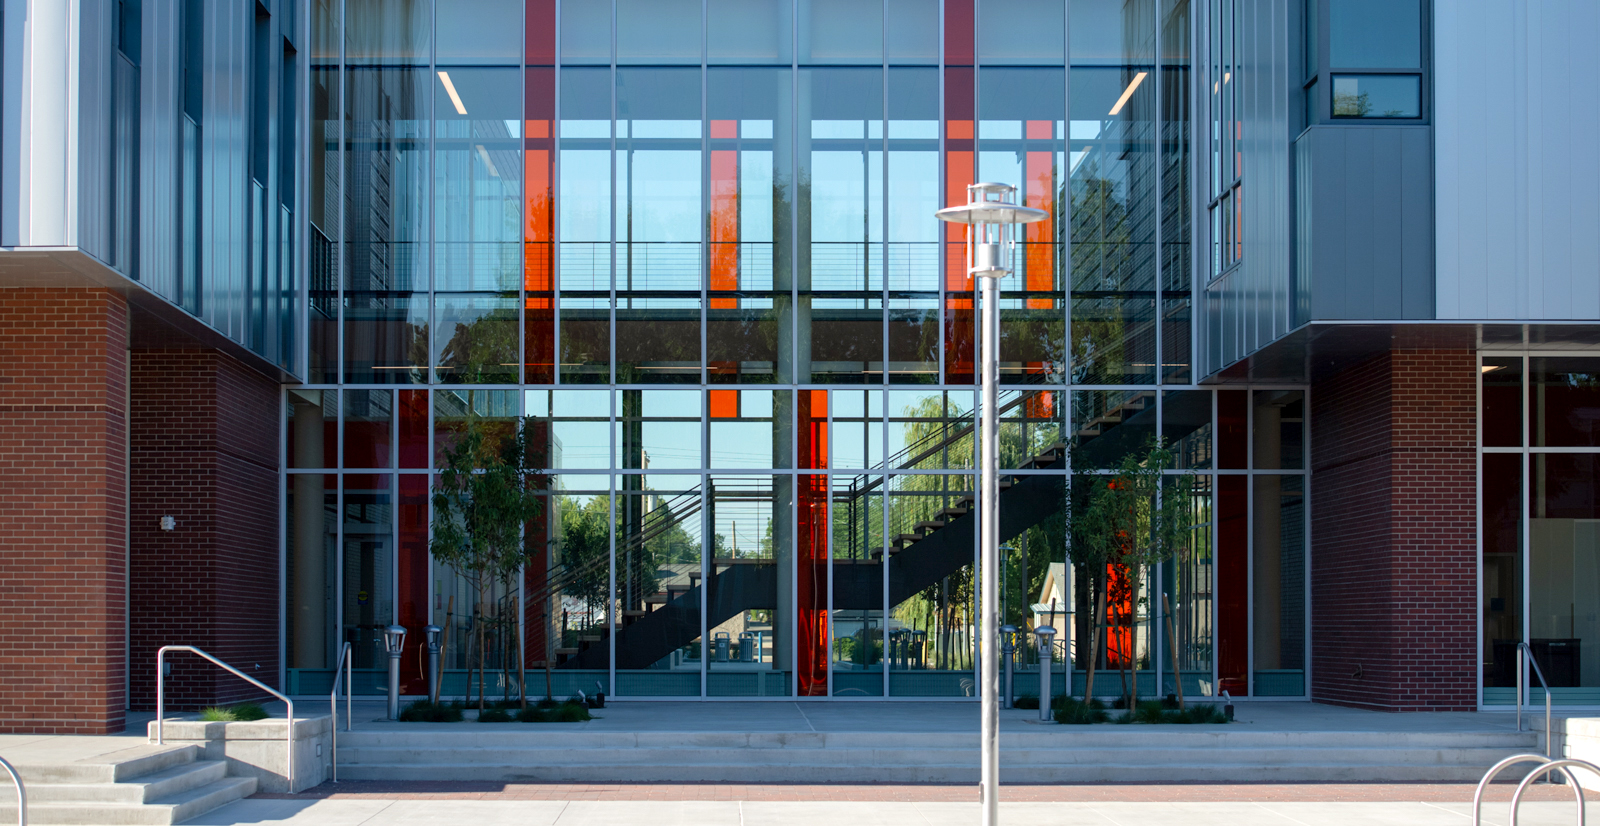 Close up view of large glass windows on front of Materials Research building